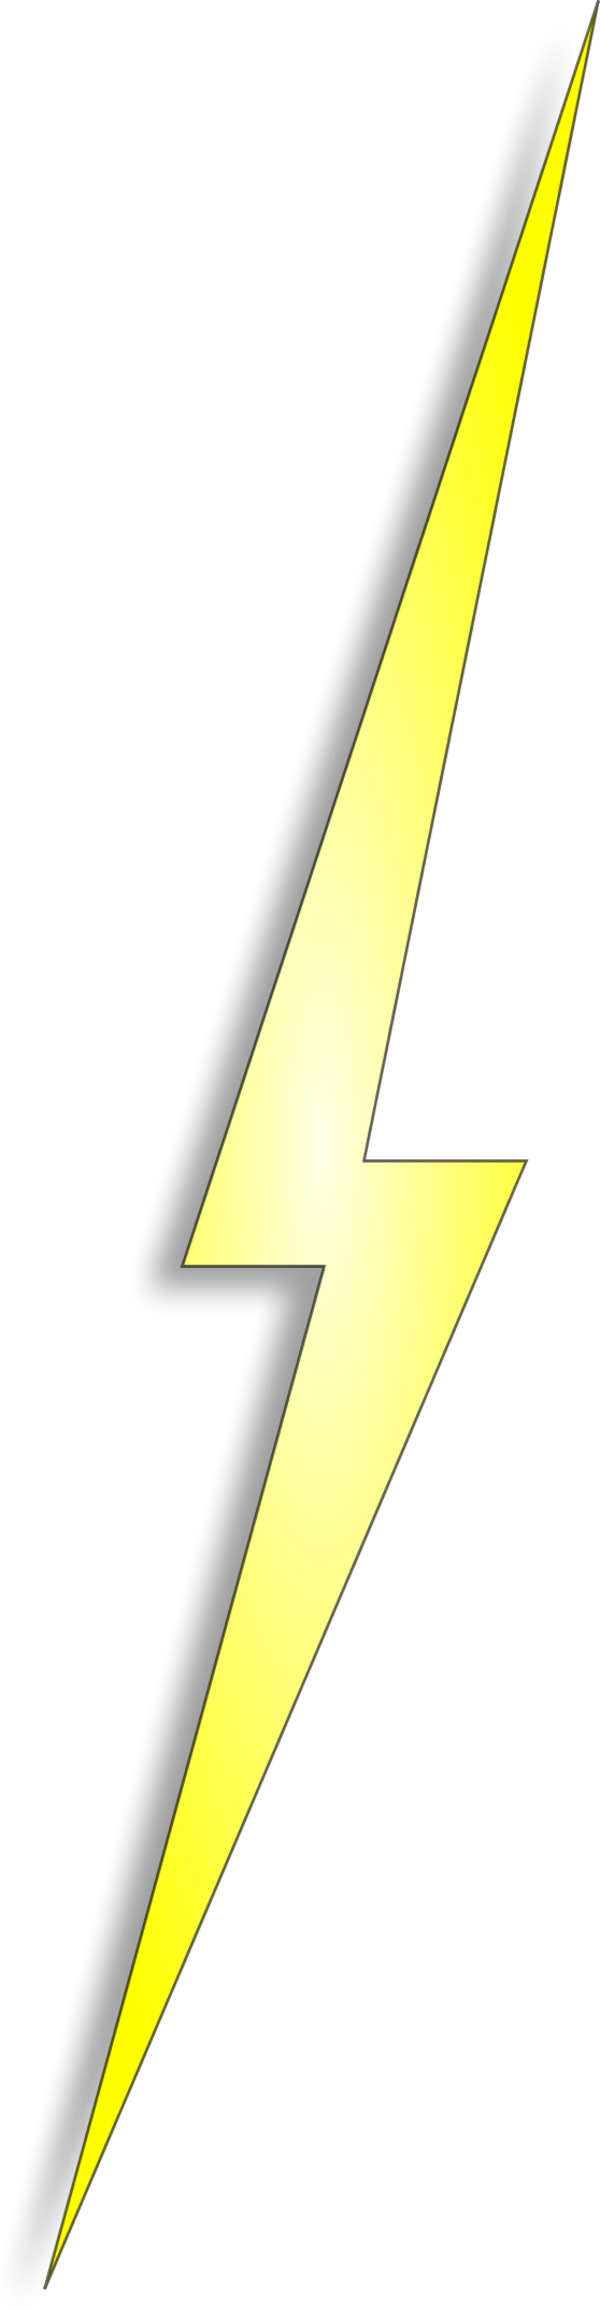 Thunder clipart. Free and lightning download